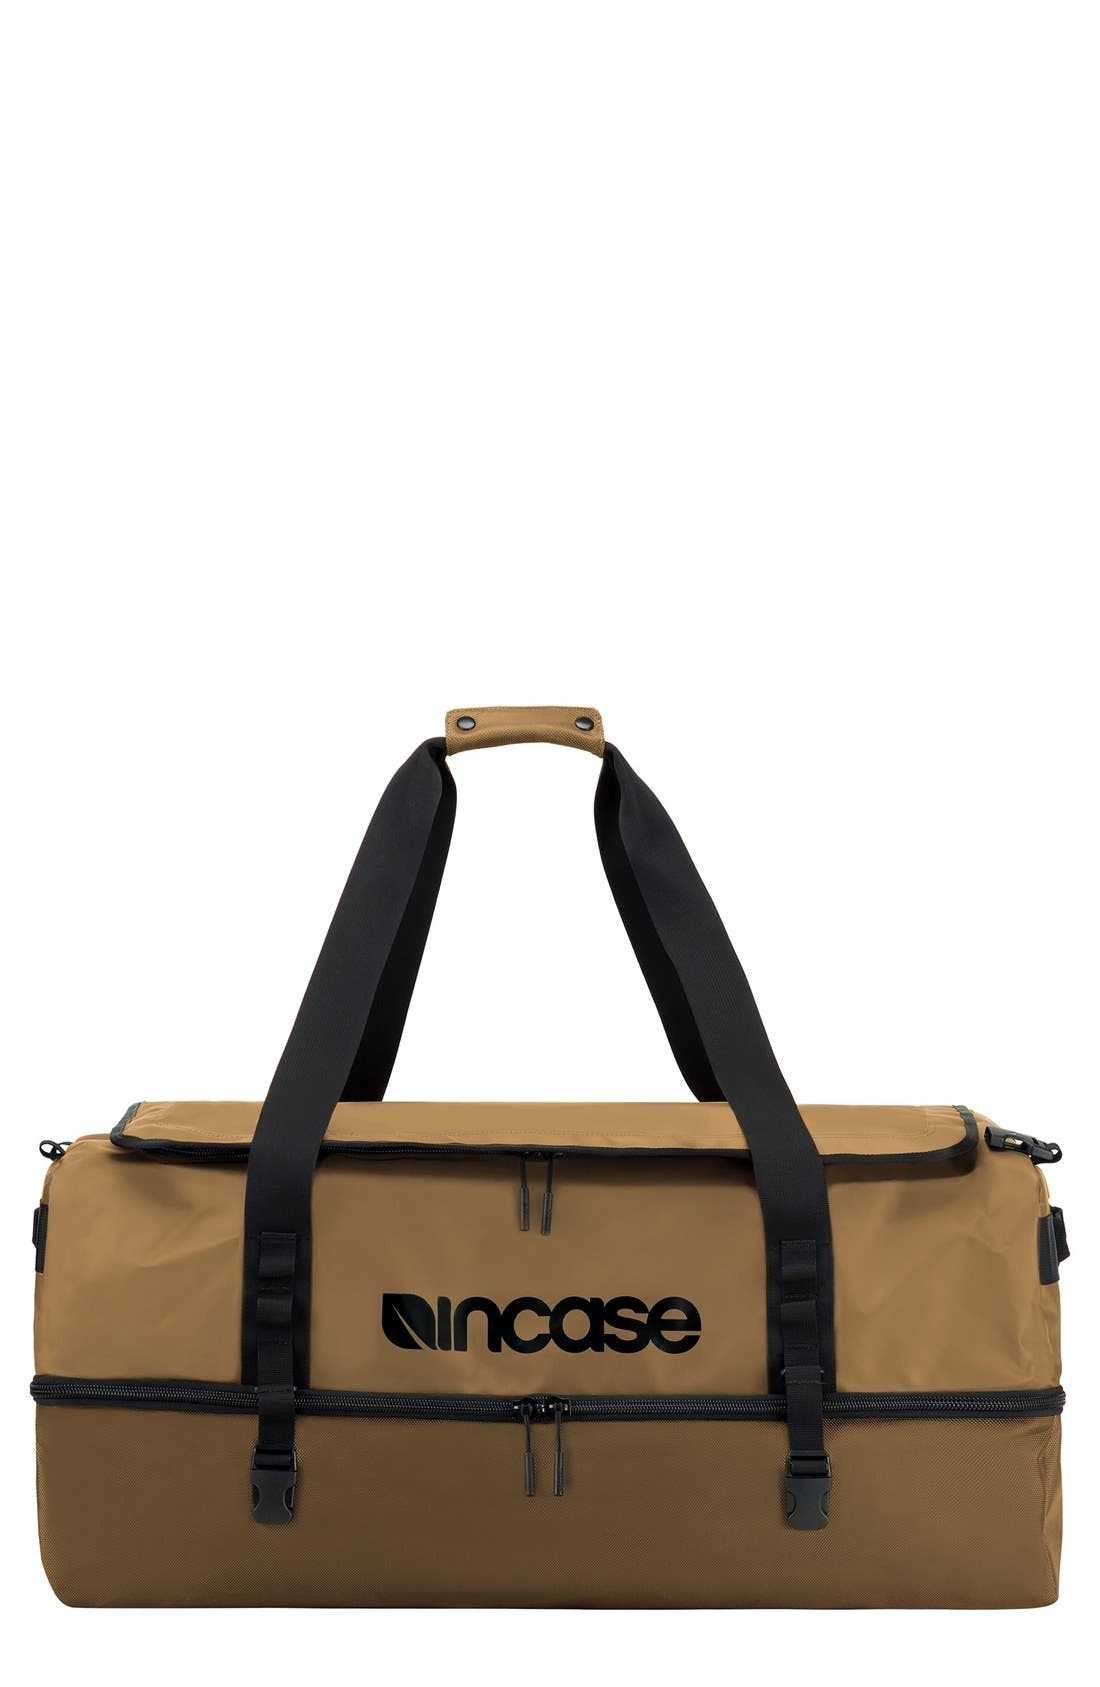 Incase Designs TRACTO Large Split Convertible Duffel Bag